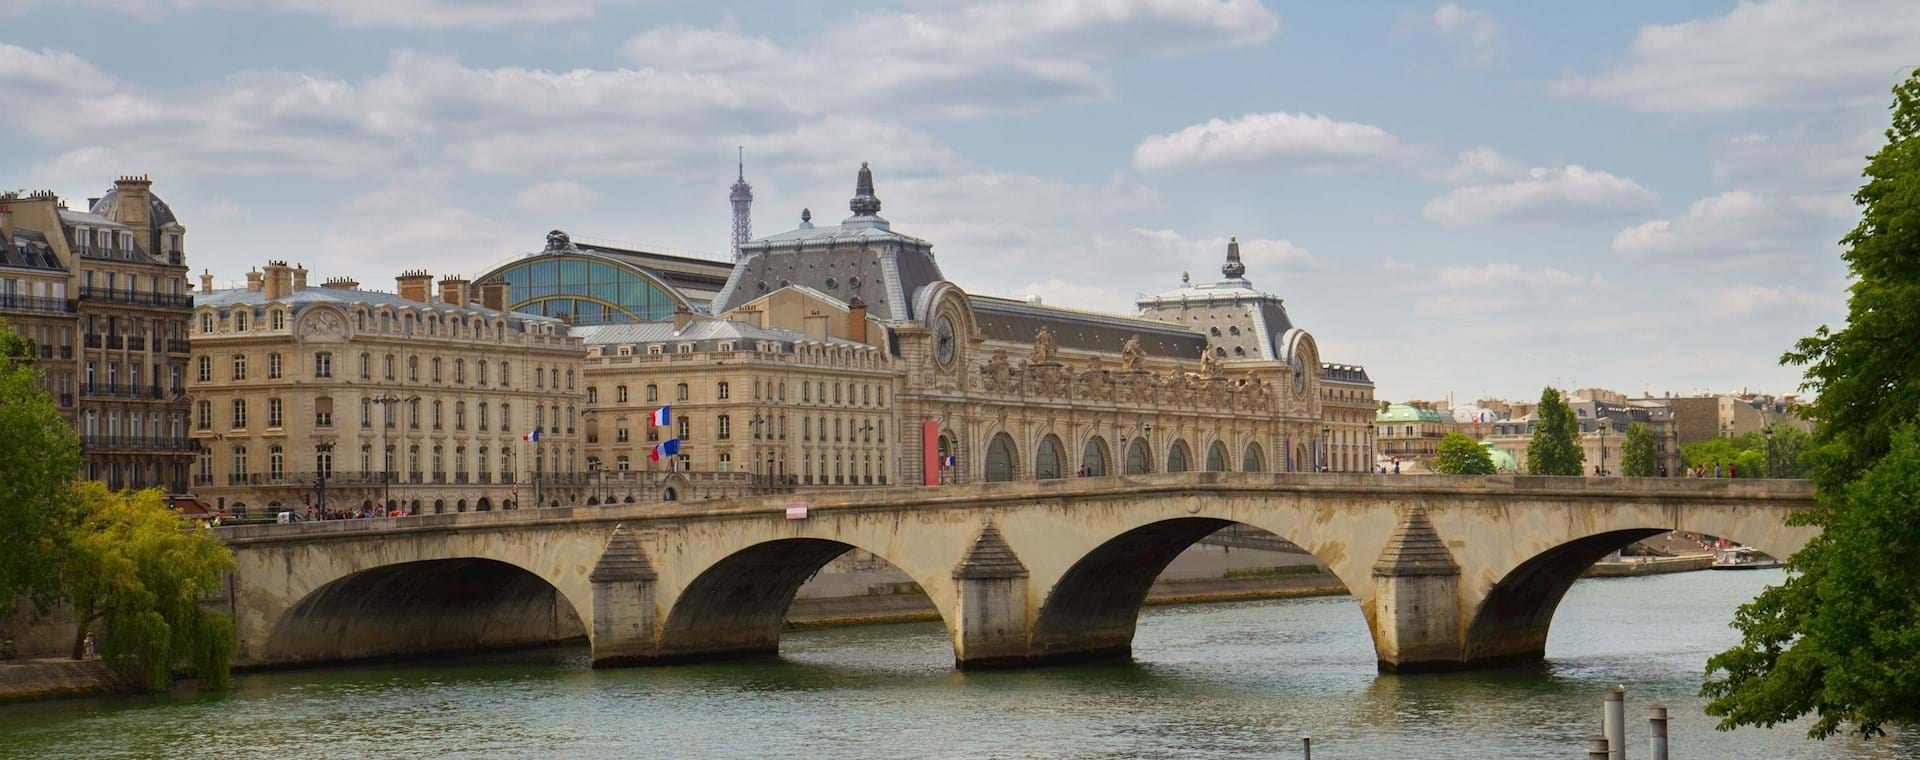 Giants of Impressionism at the Musée d'Orsay Tour